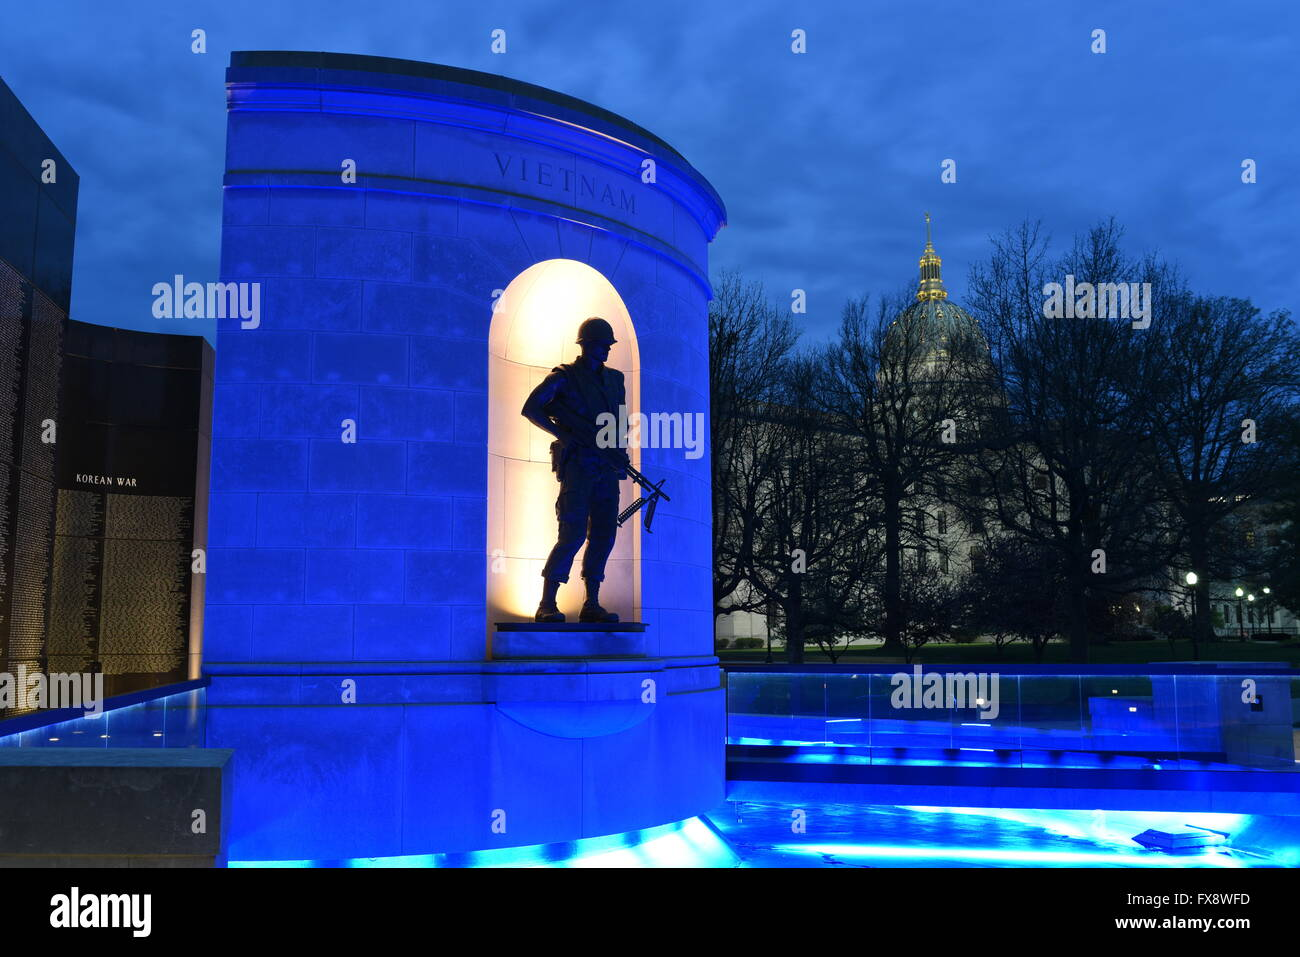 usa-west-virginia-wv-charleston-state-capitol-veterans-memorial-world-FX8WFD.jpg